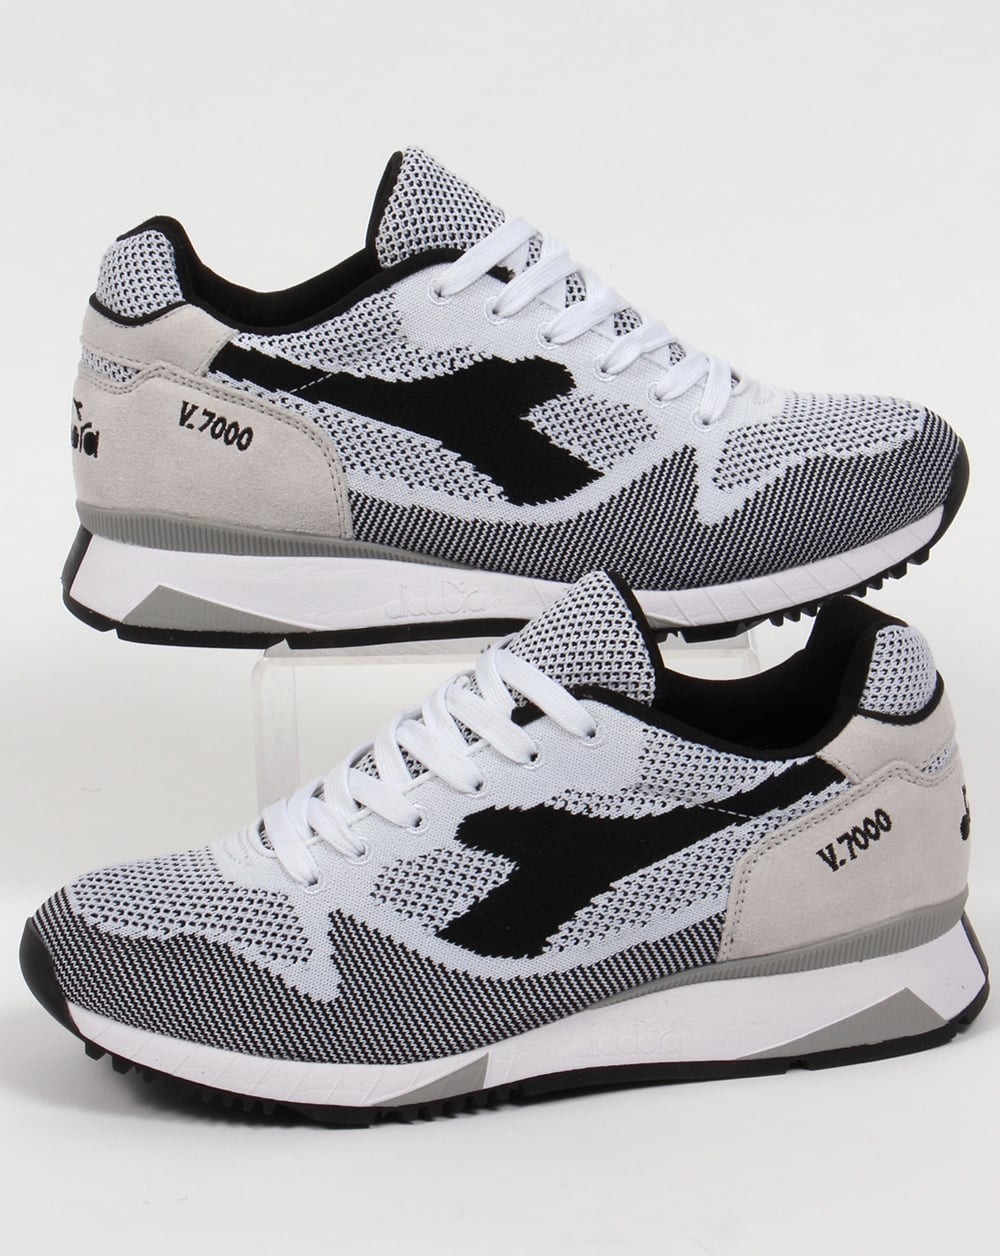 306f8b69 Diadora V7000 Weave Trainers White/Black